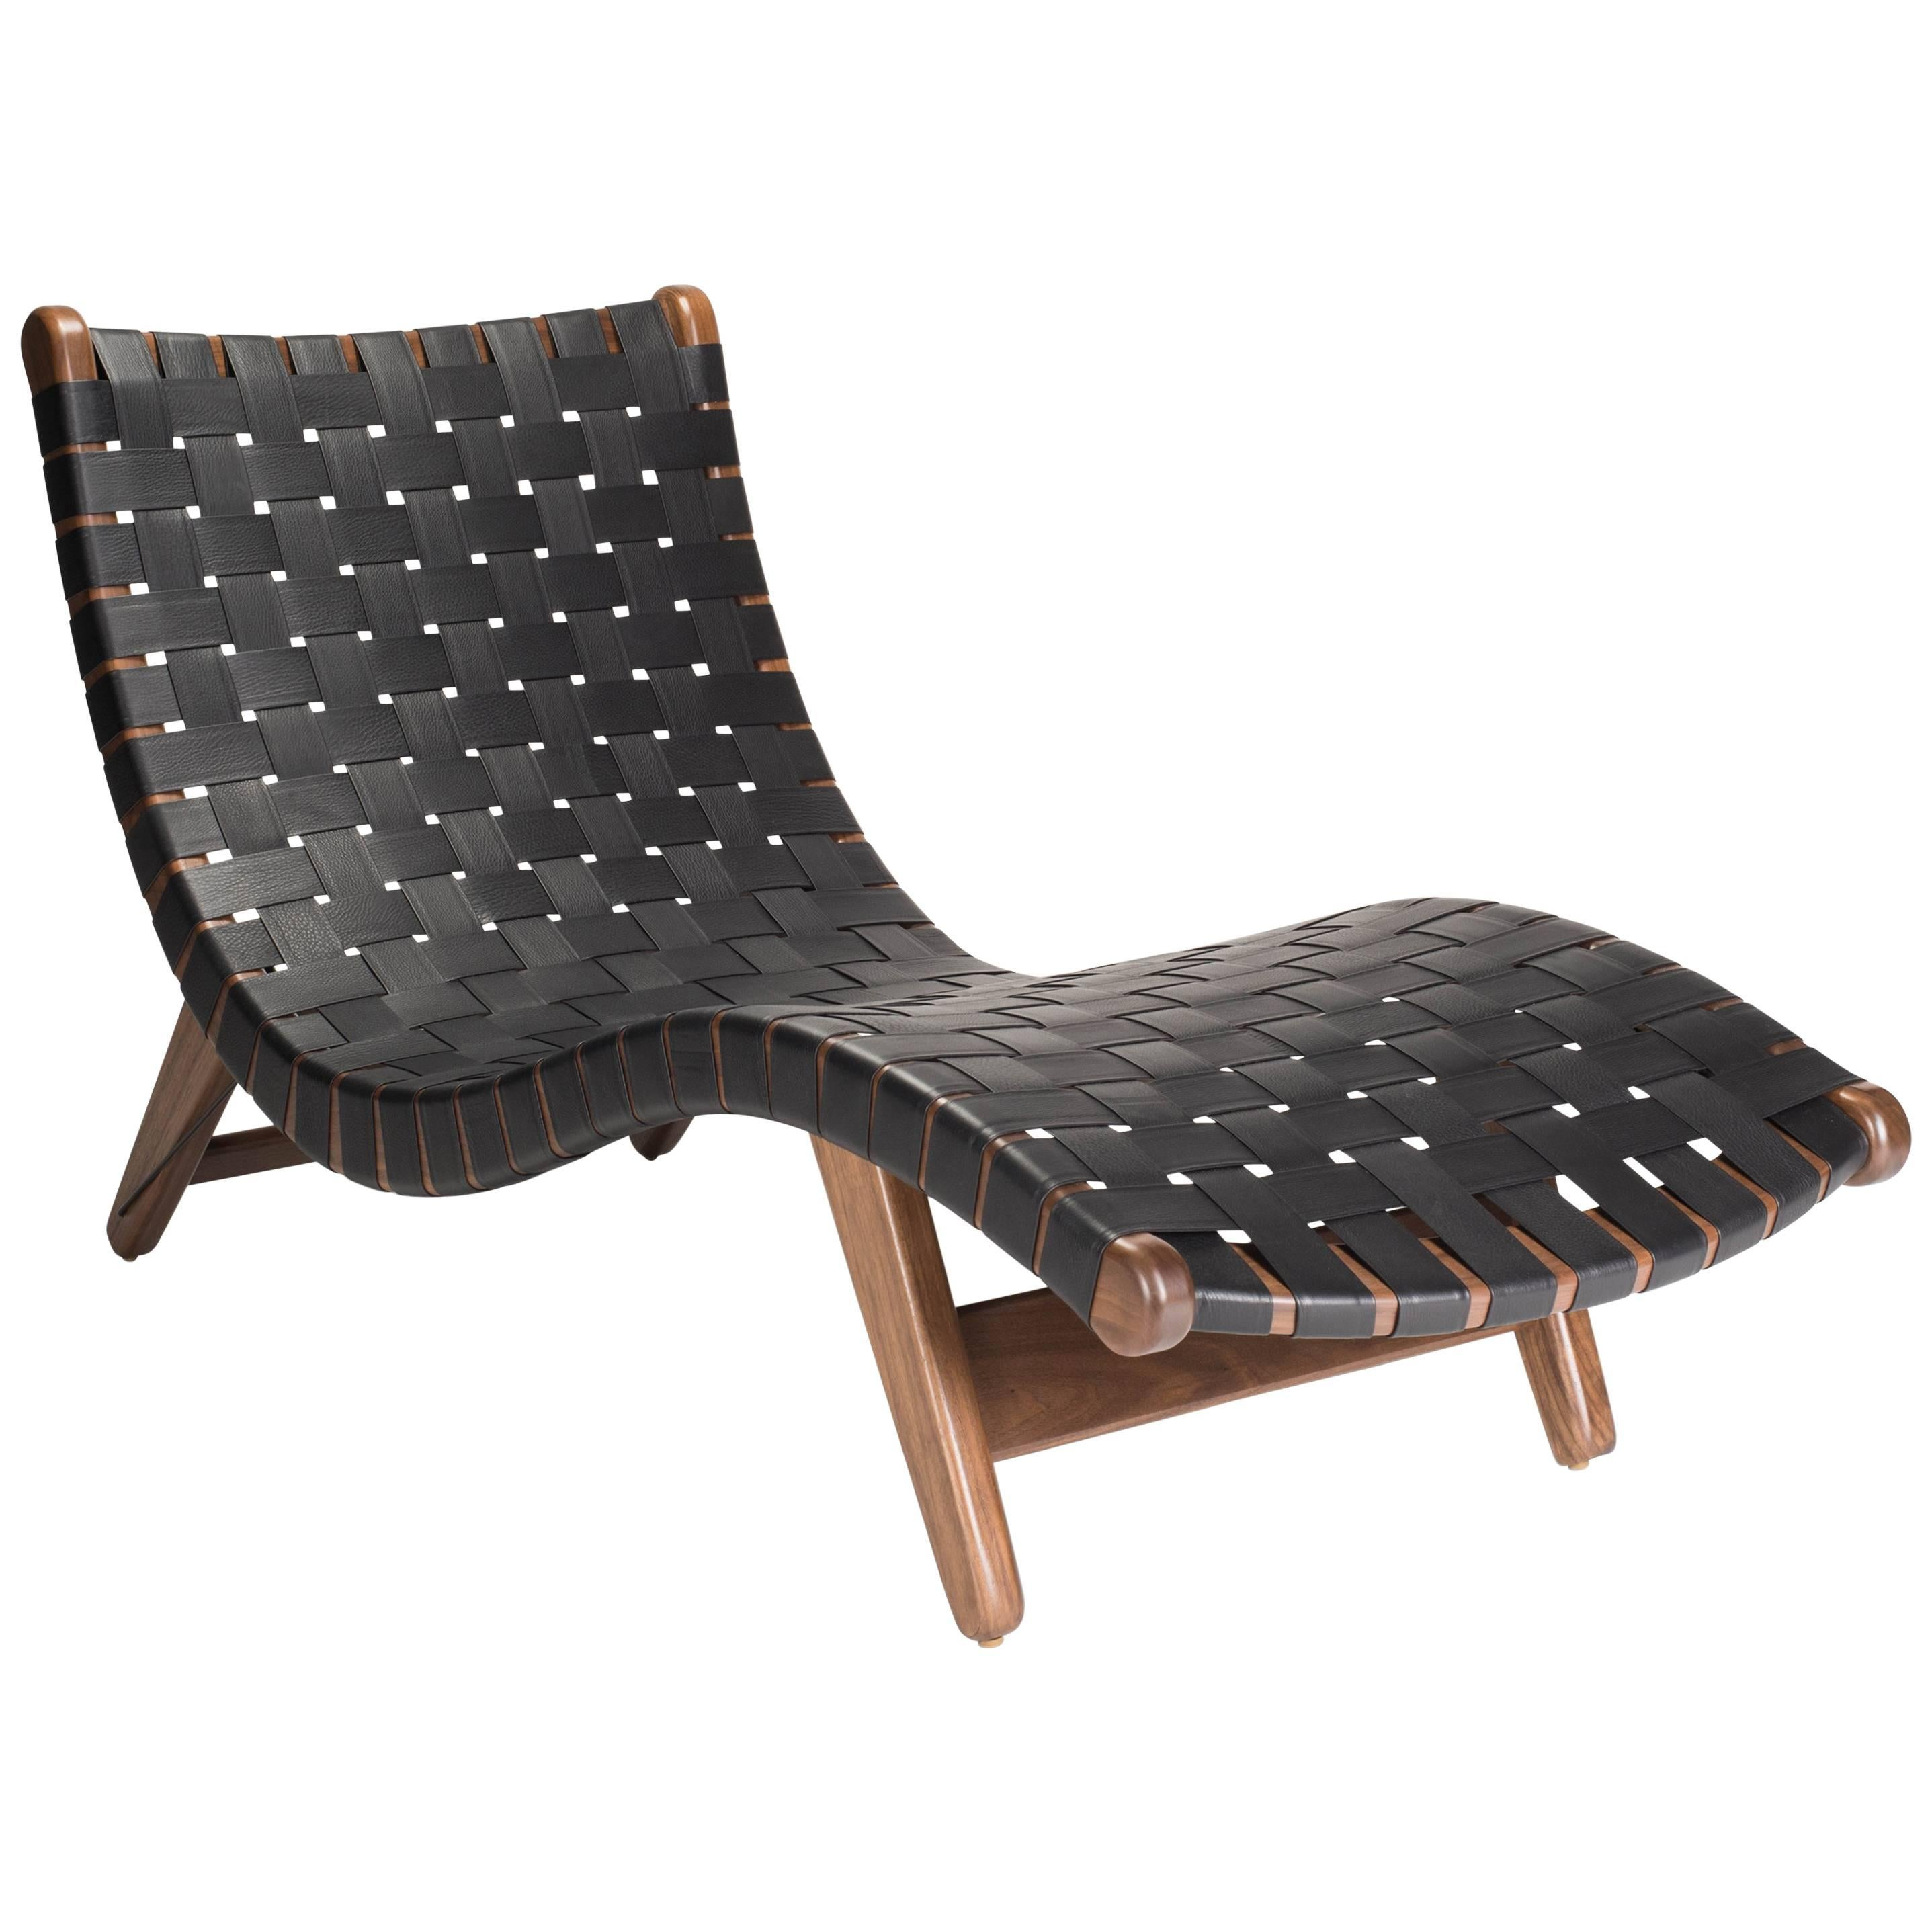 Midcentury Mexican 'Alacrán' Chaise by Michael van Beuren from LUTECA